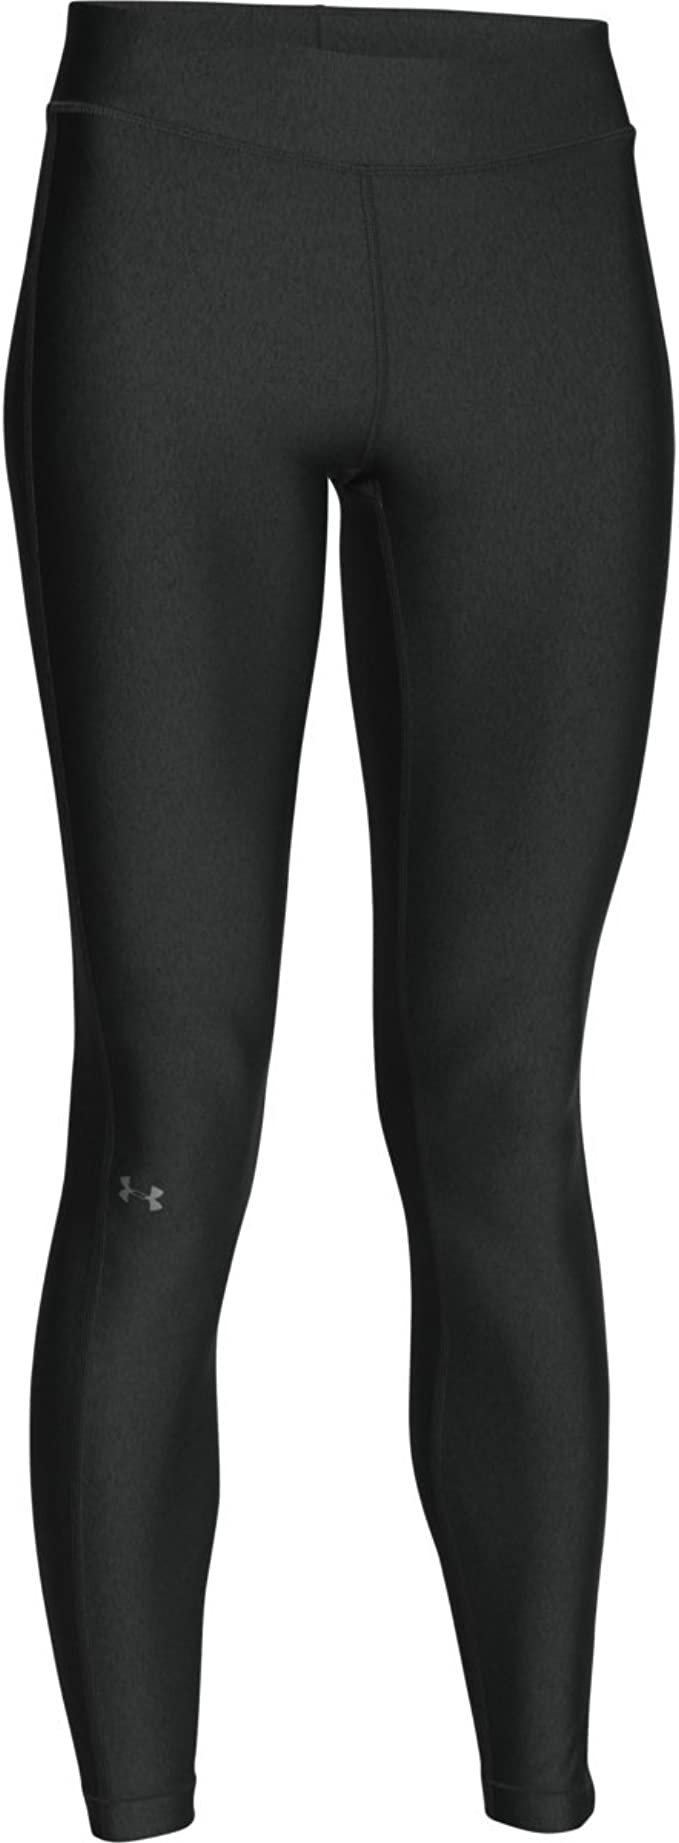 New Under Armour Woman/'s UA HeatGear Leggings 1271793